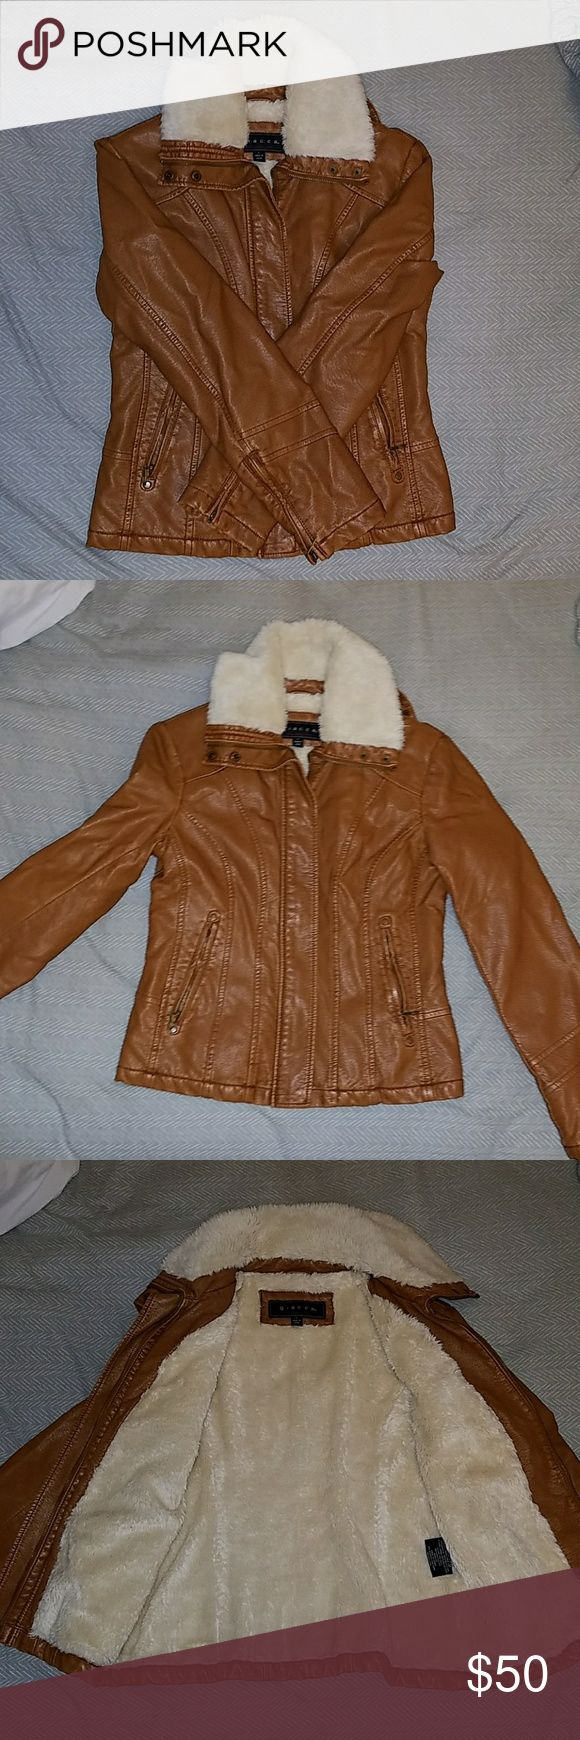 Leather and fur jacket Tan leather and white fur Jackets & Coats